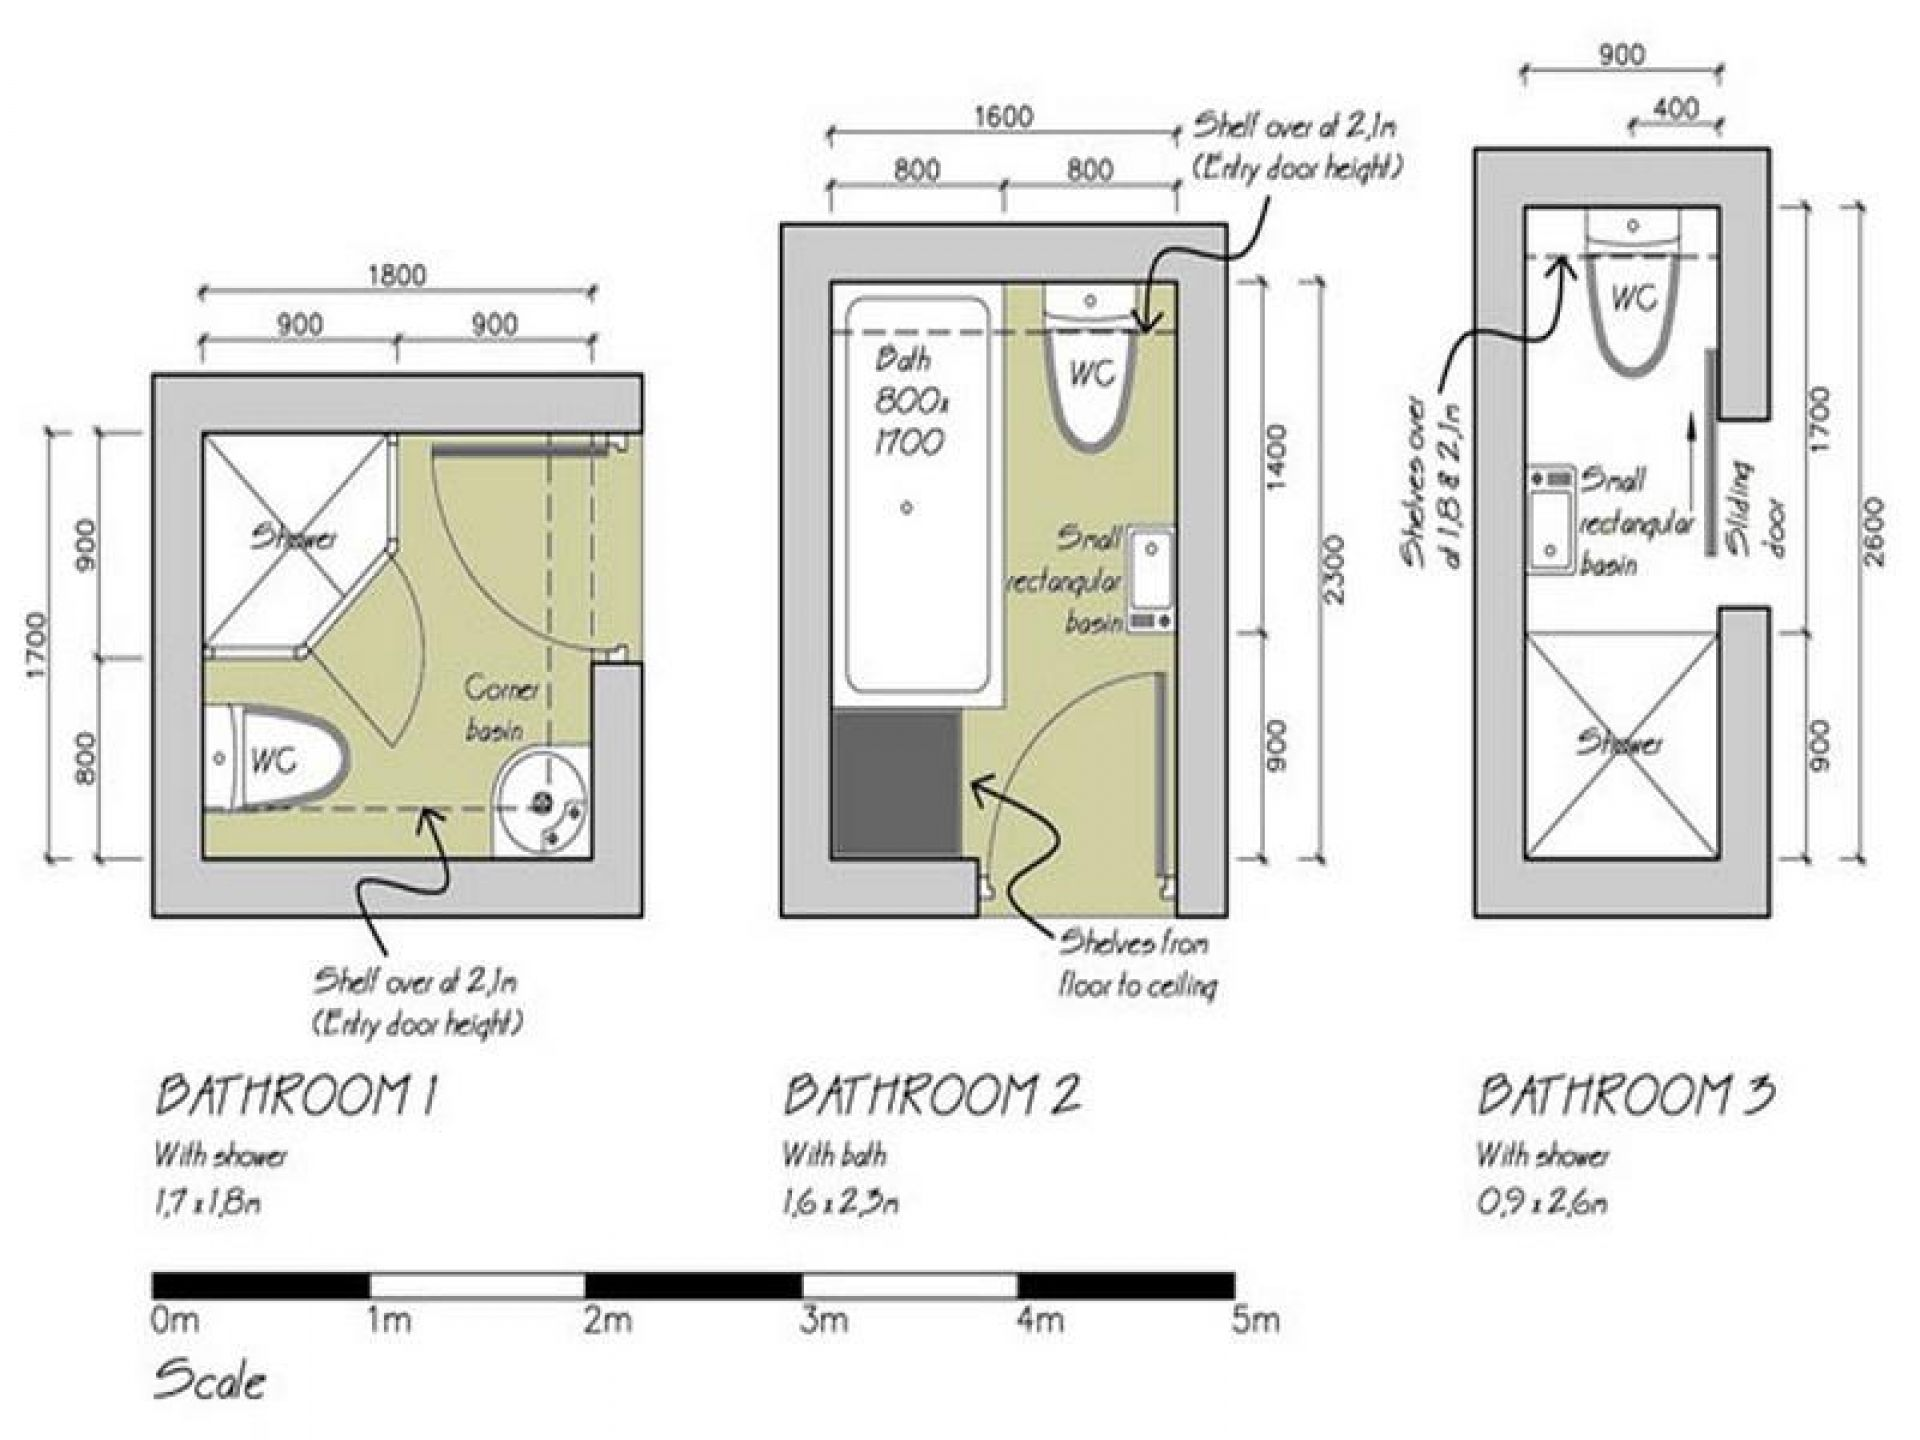 Bathroom layout shower - Epic Small Bathroom Floor Plans With Small Bathtub And Single Toilet Sink Beside